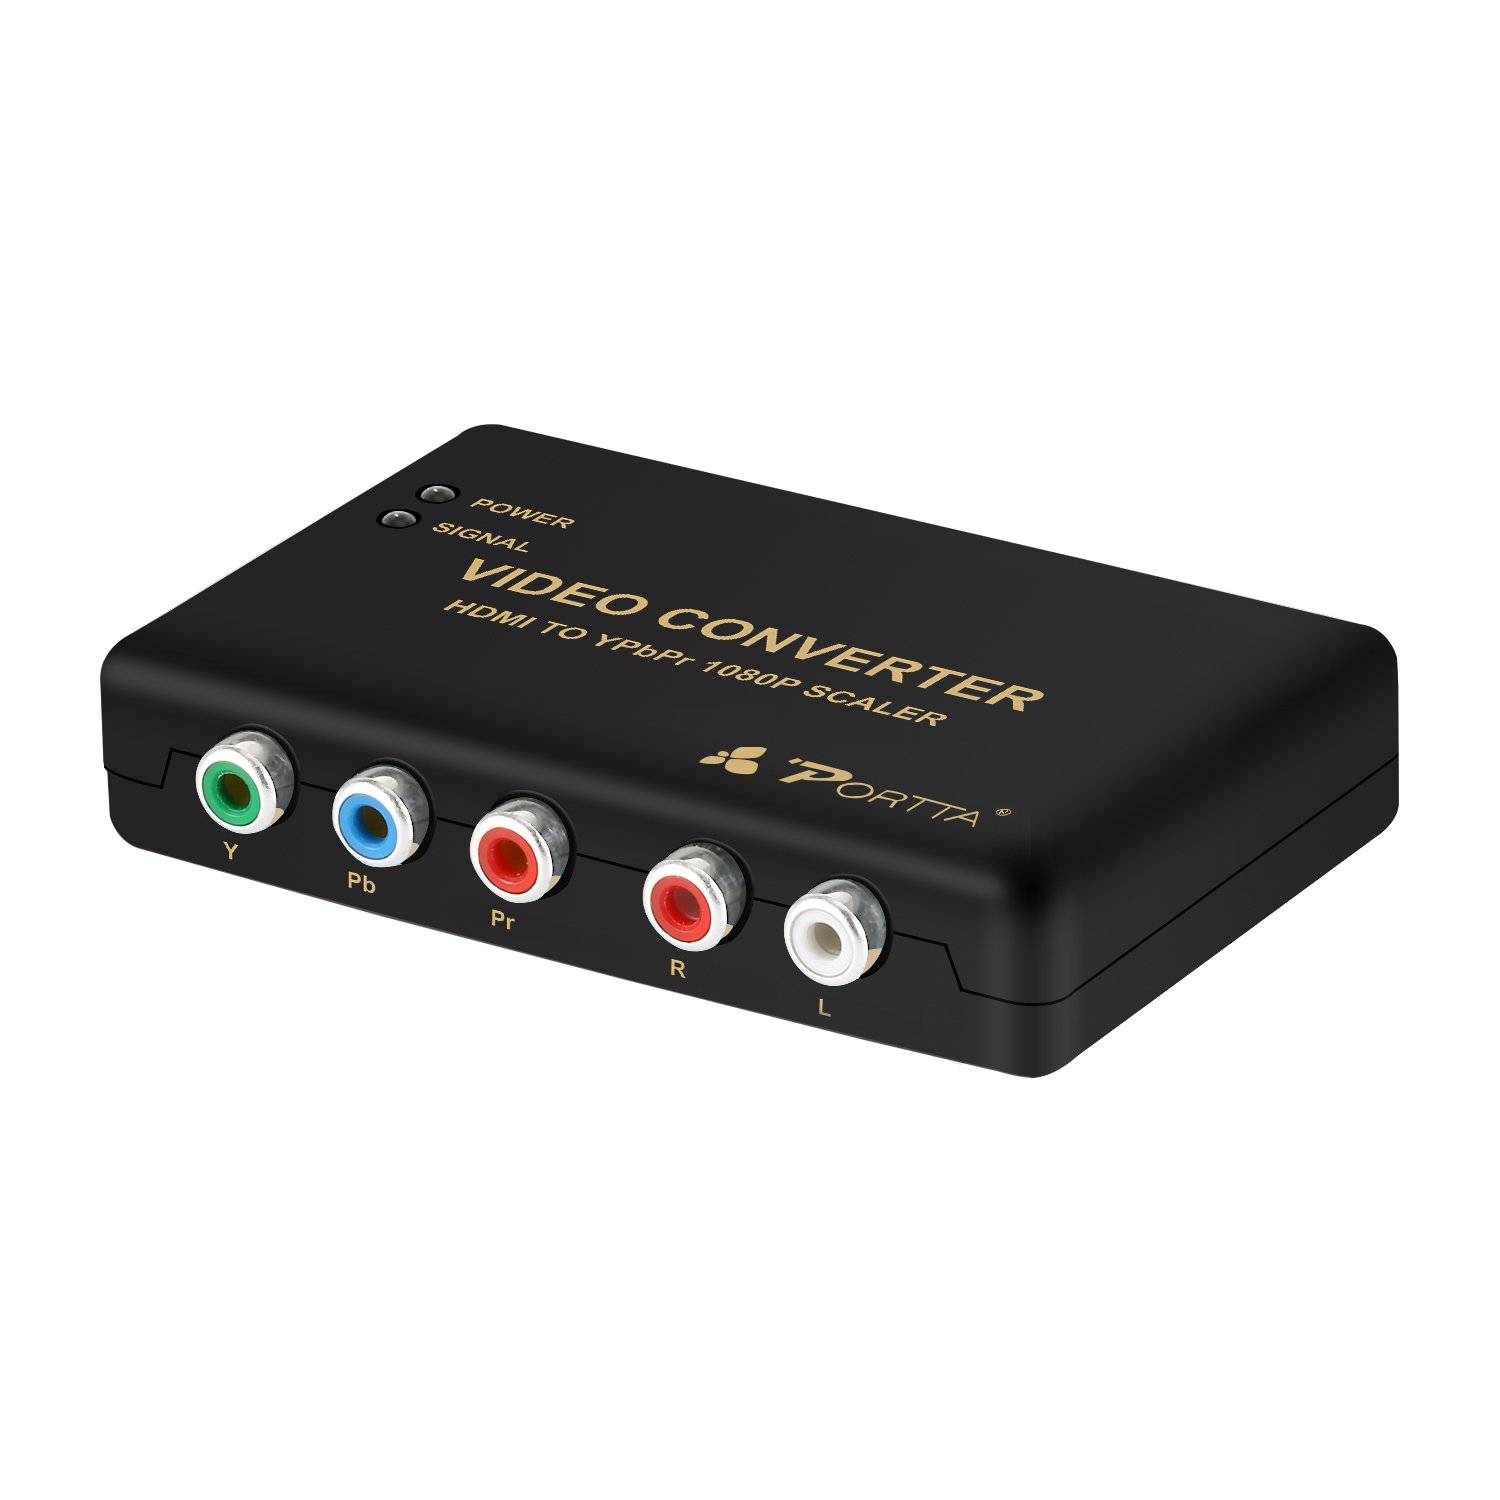 Portta HDMI to YPbPr Component RGB + R/L Converter v1.3 Scaler support R/L Audio output by Portta